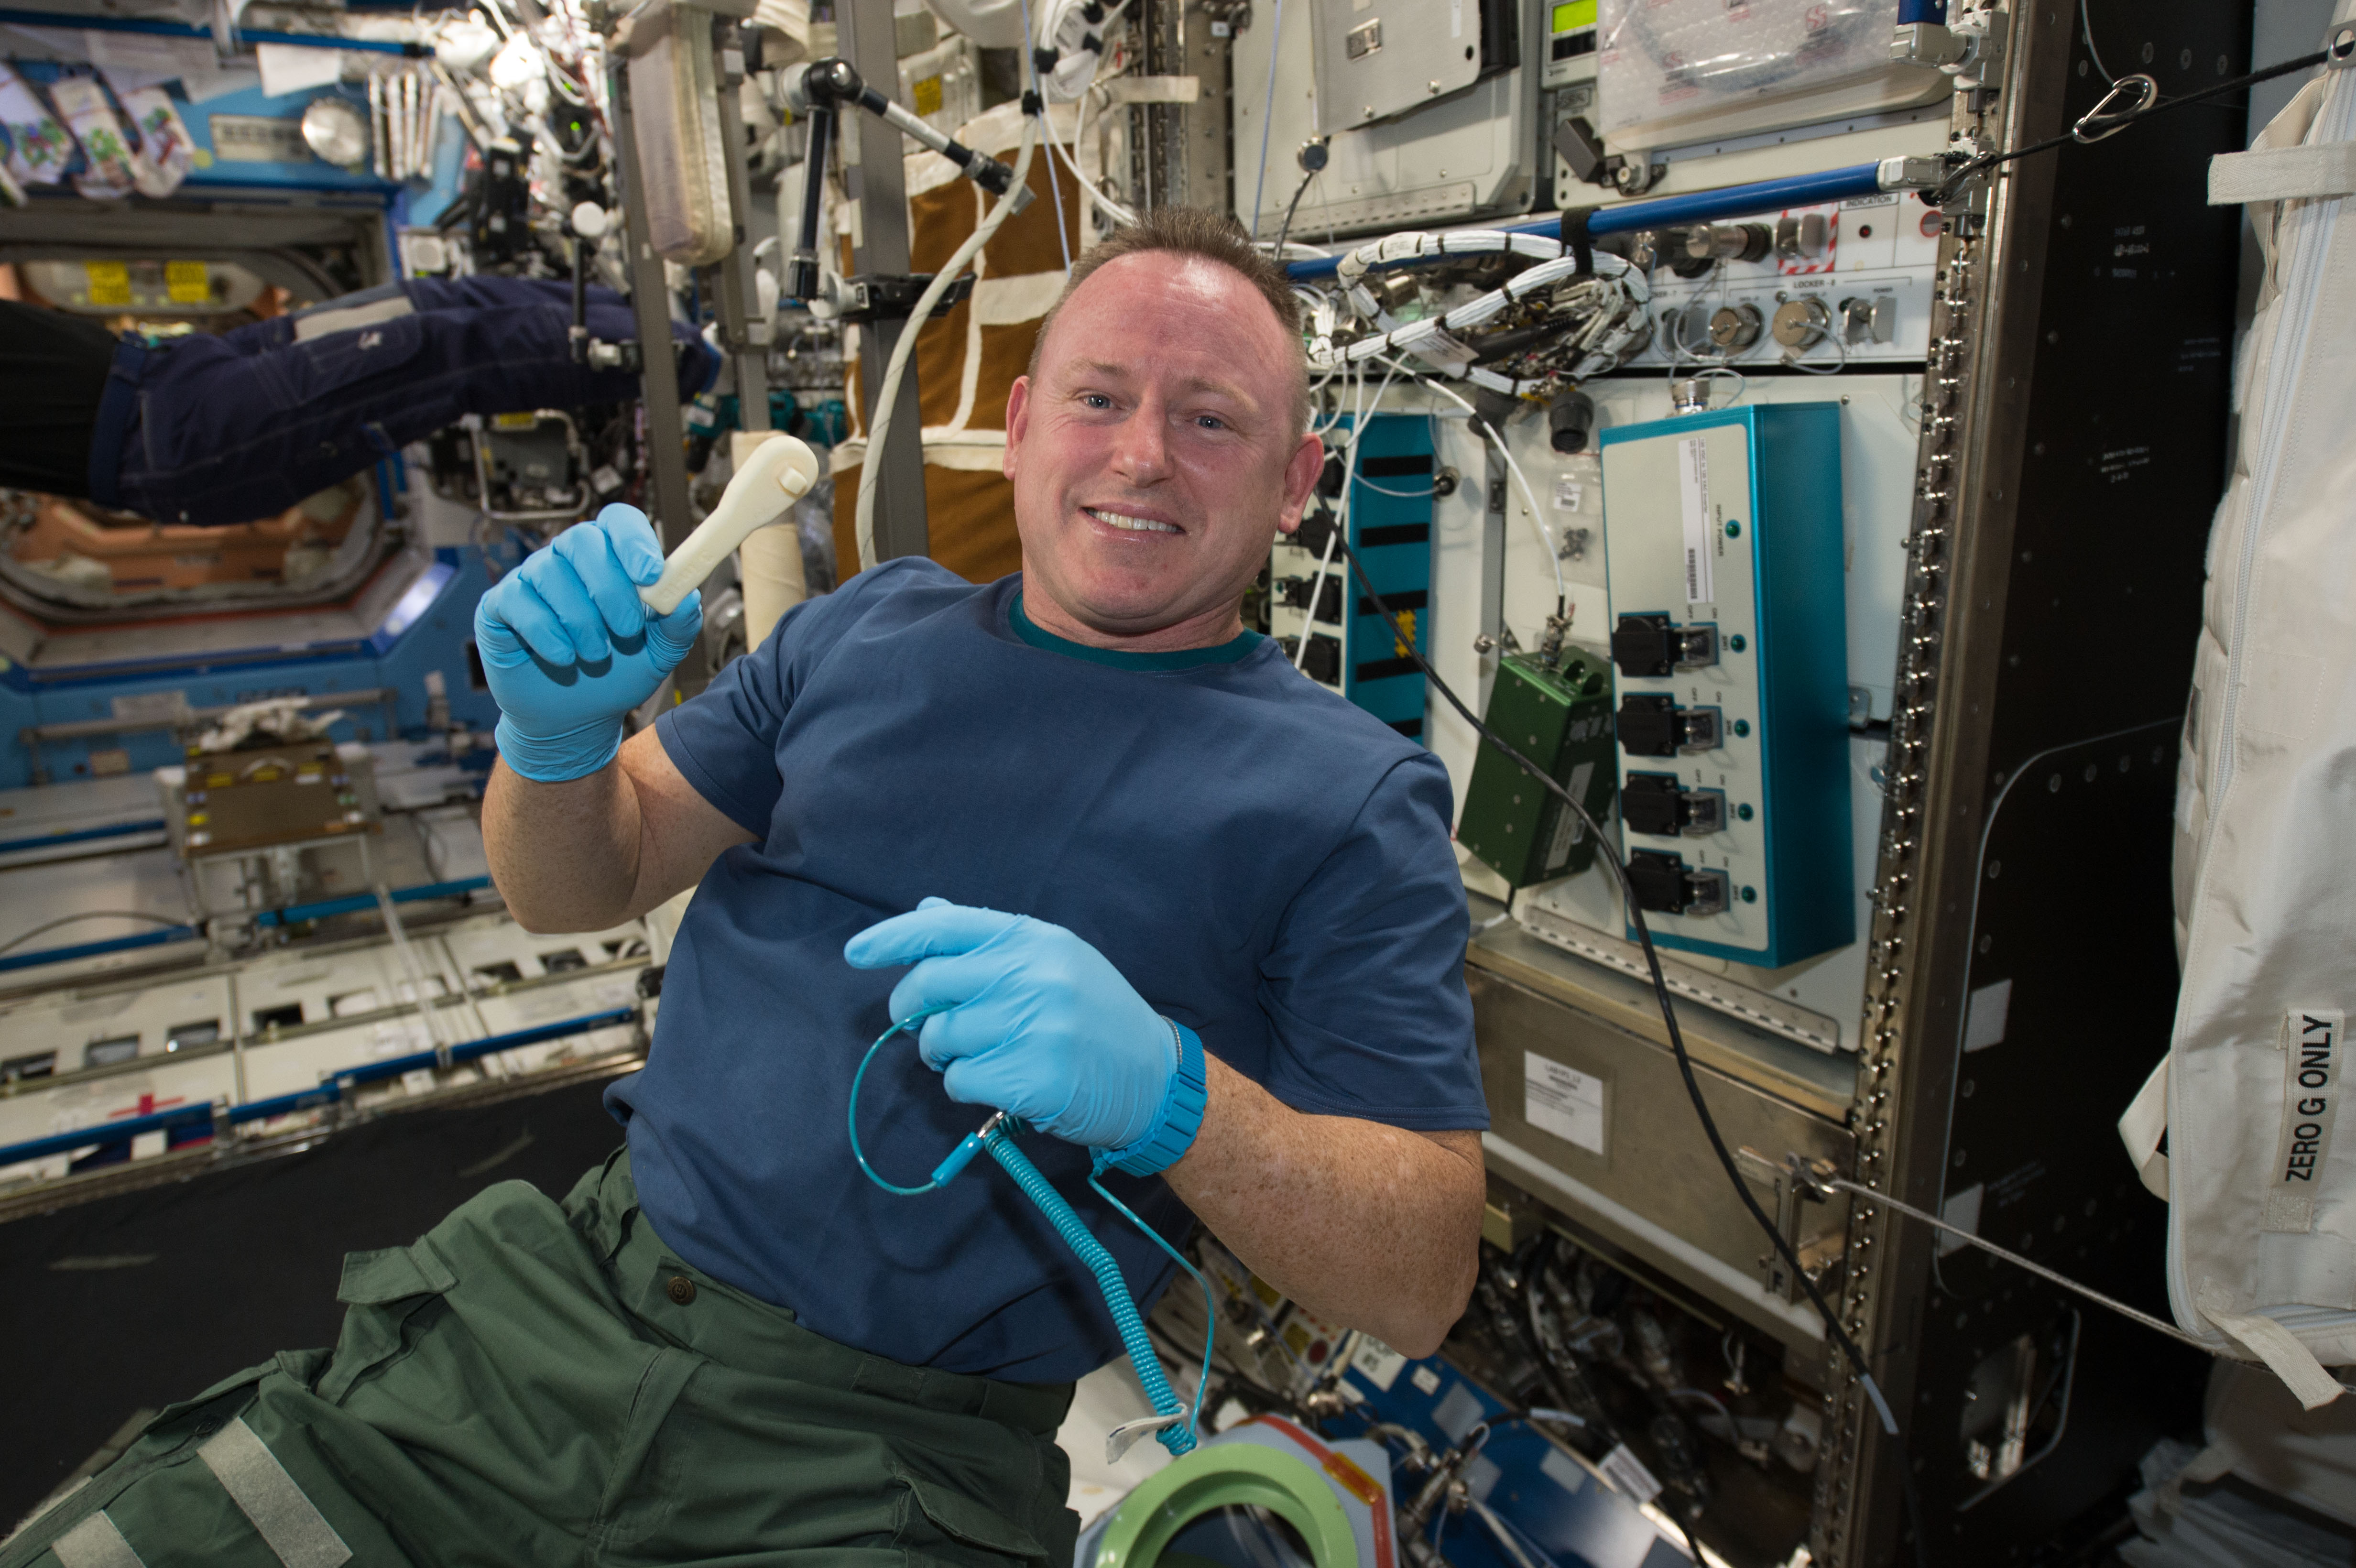 Space Station's 3D Printer Makes Wrench From 'Beamed Up' Design